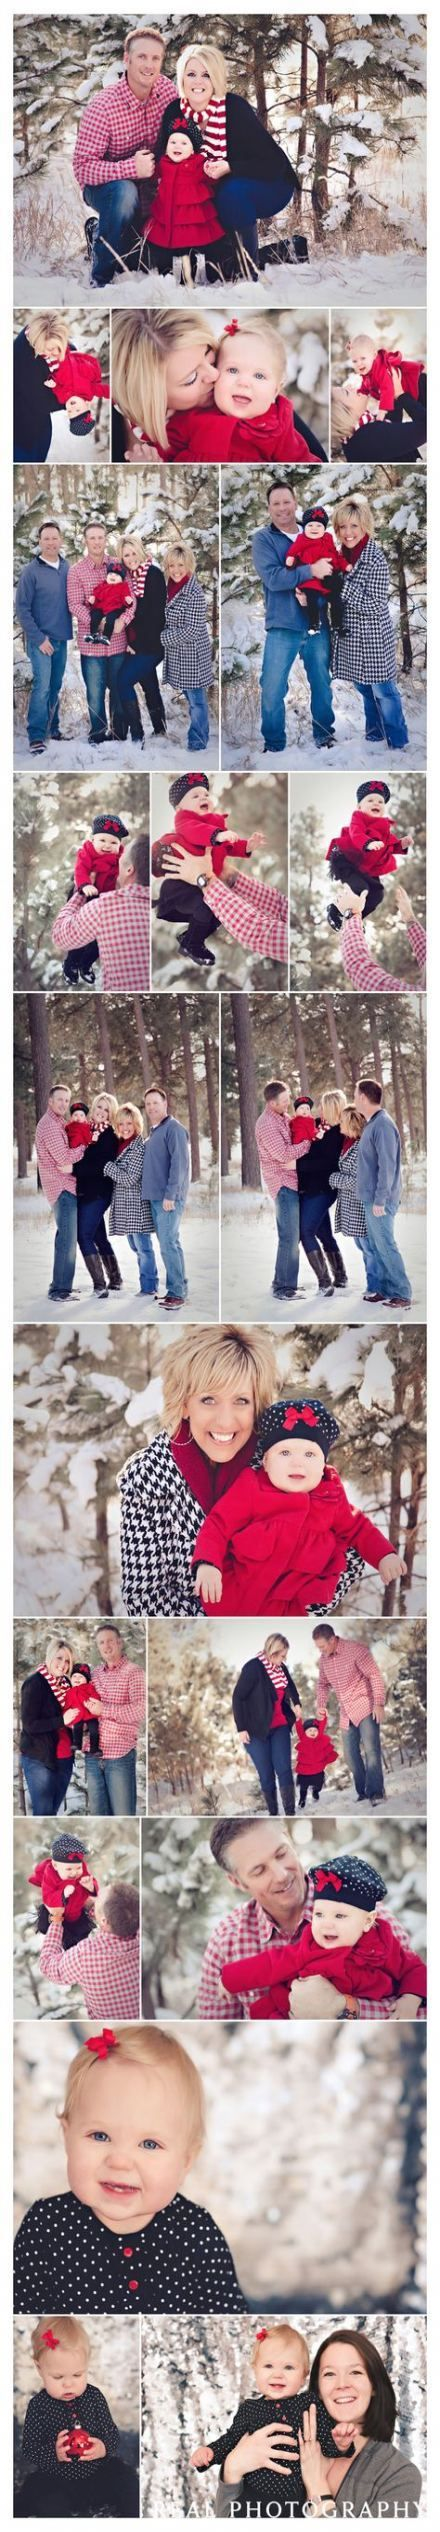 44+ Ideas Photography Ideas Winter Family Color Schemes For 2019 #winterfamilyphotography 44+ Ideas Photography Ideas Winter Family Color Schemes For 2019 #photography #winterfamilyphotography